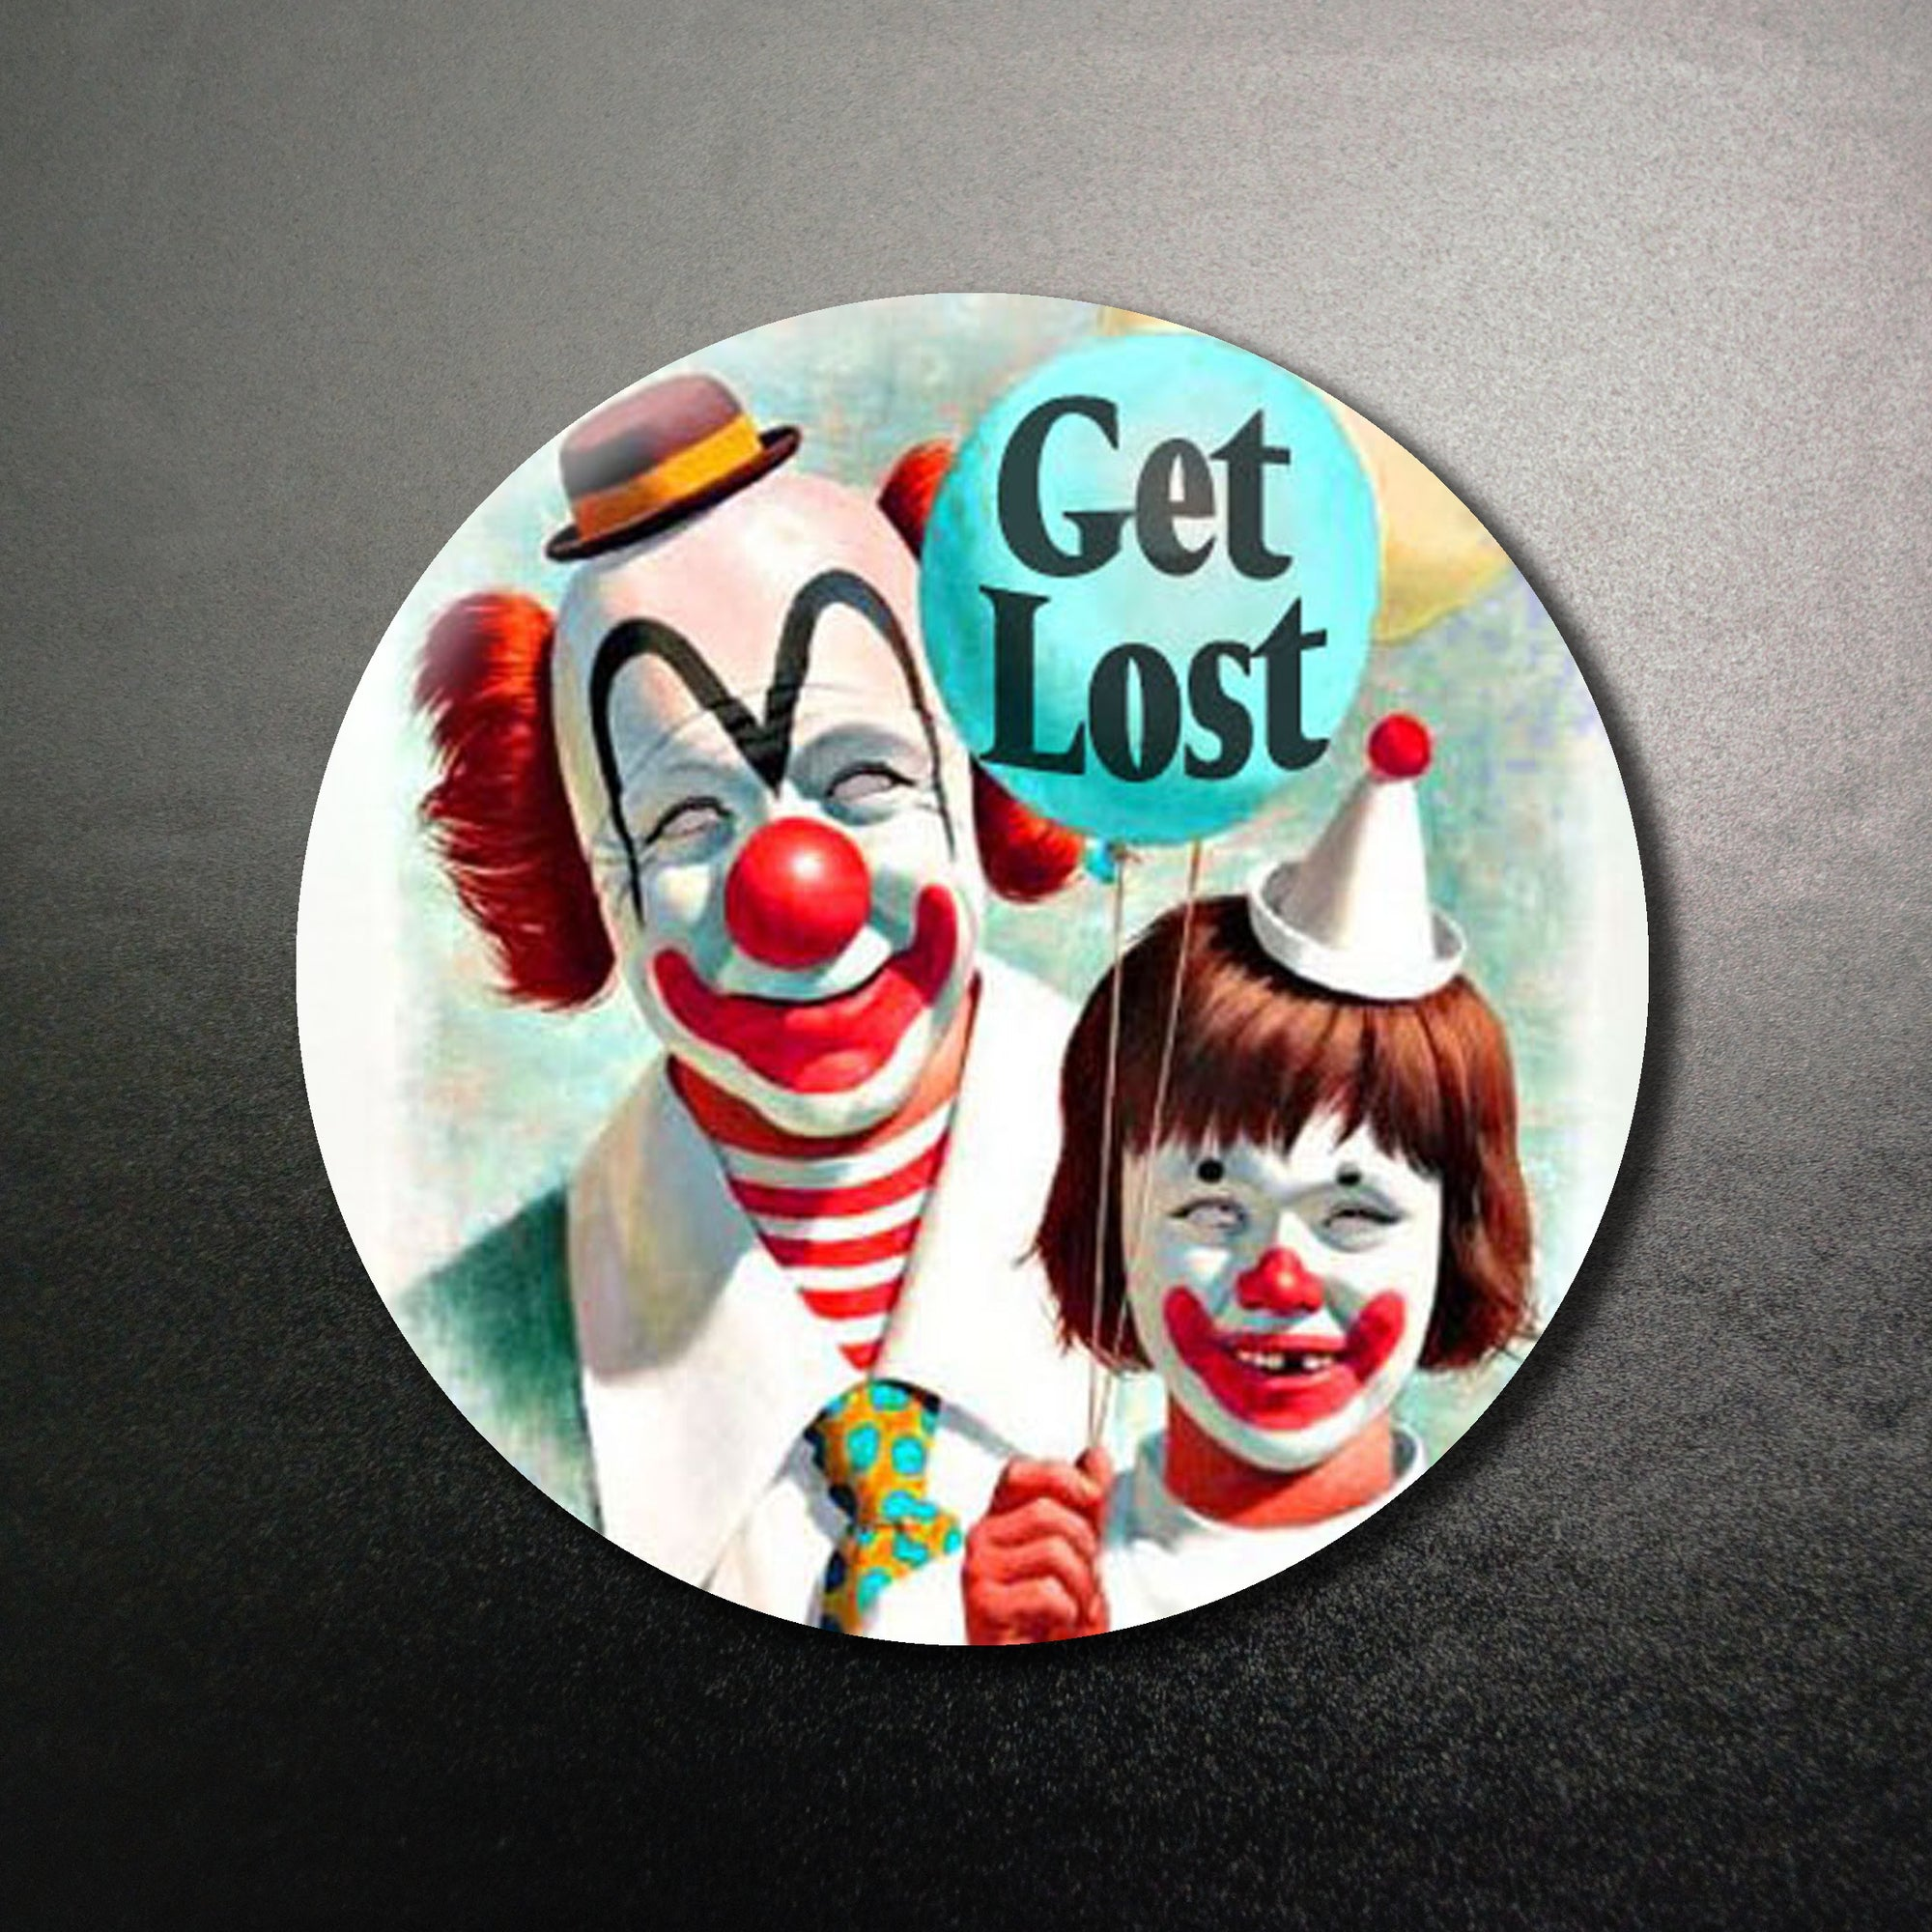 Get Lost 1.25 inch Pinback Button or Magnet